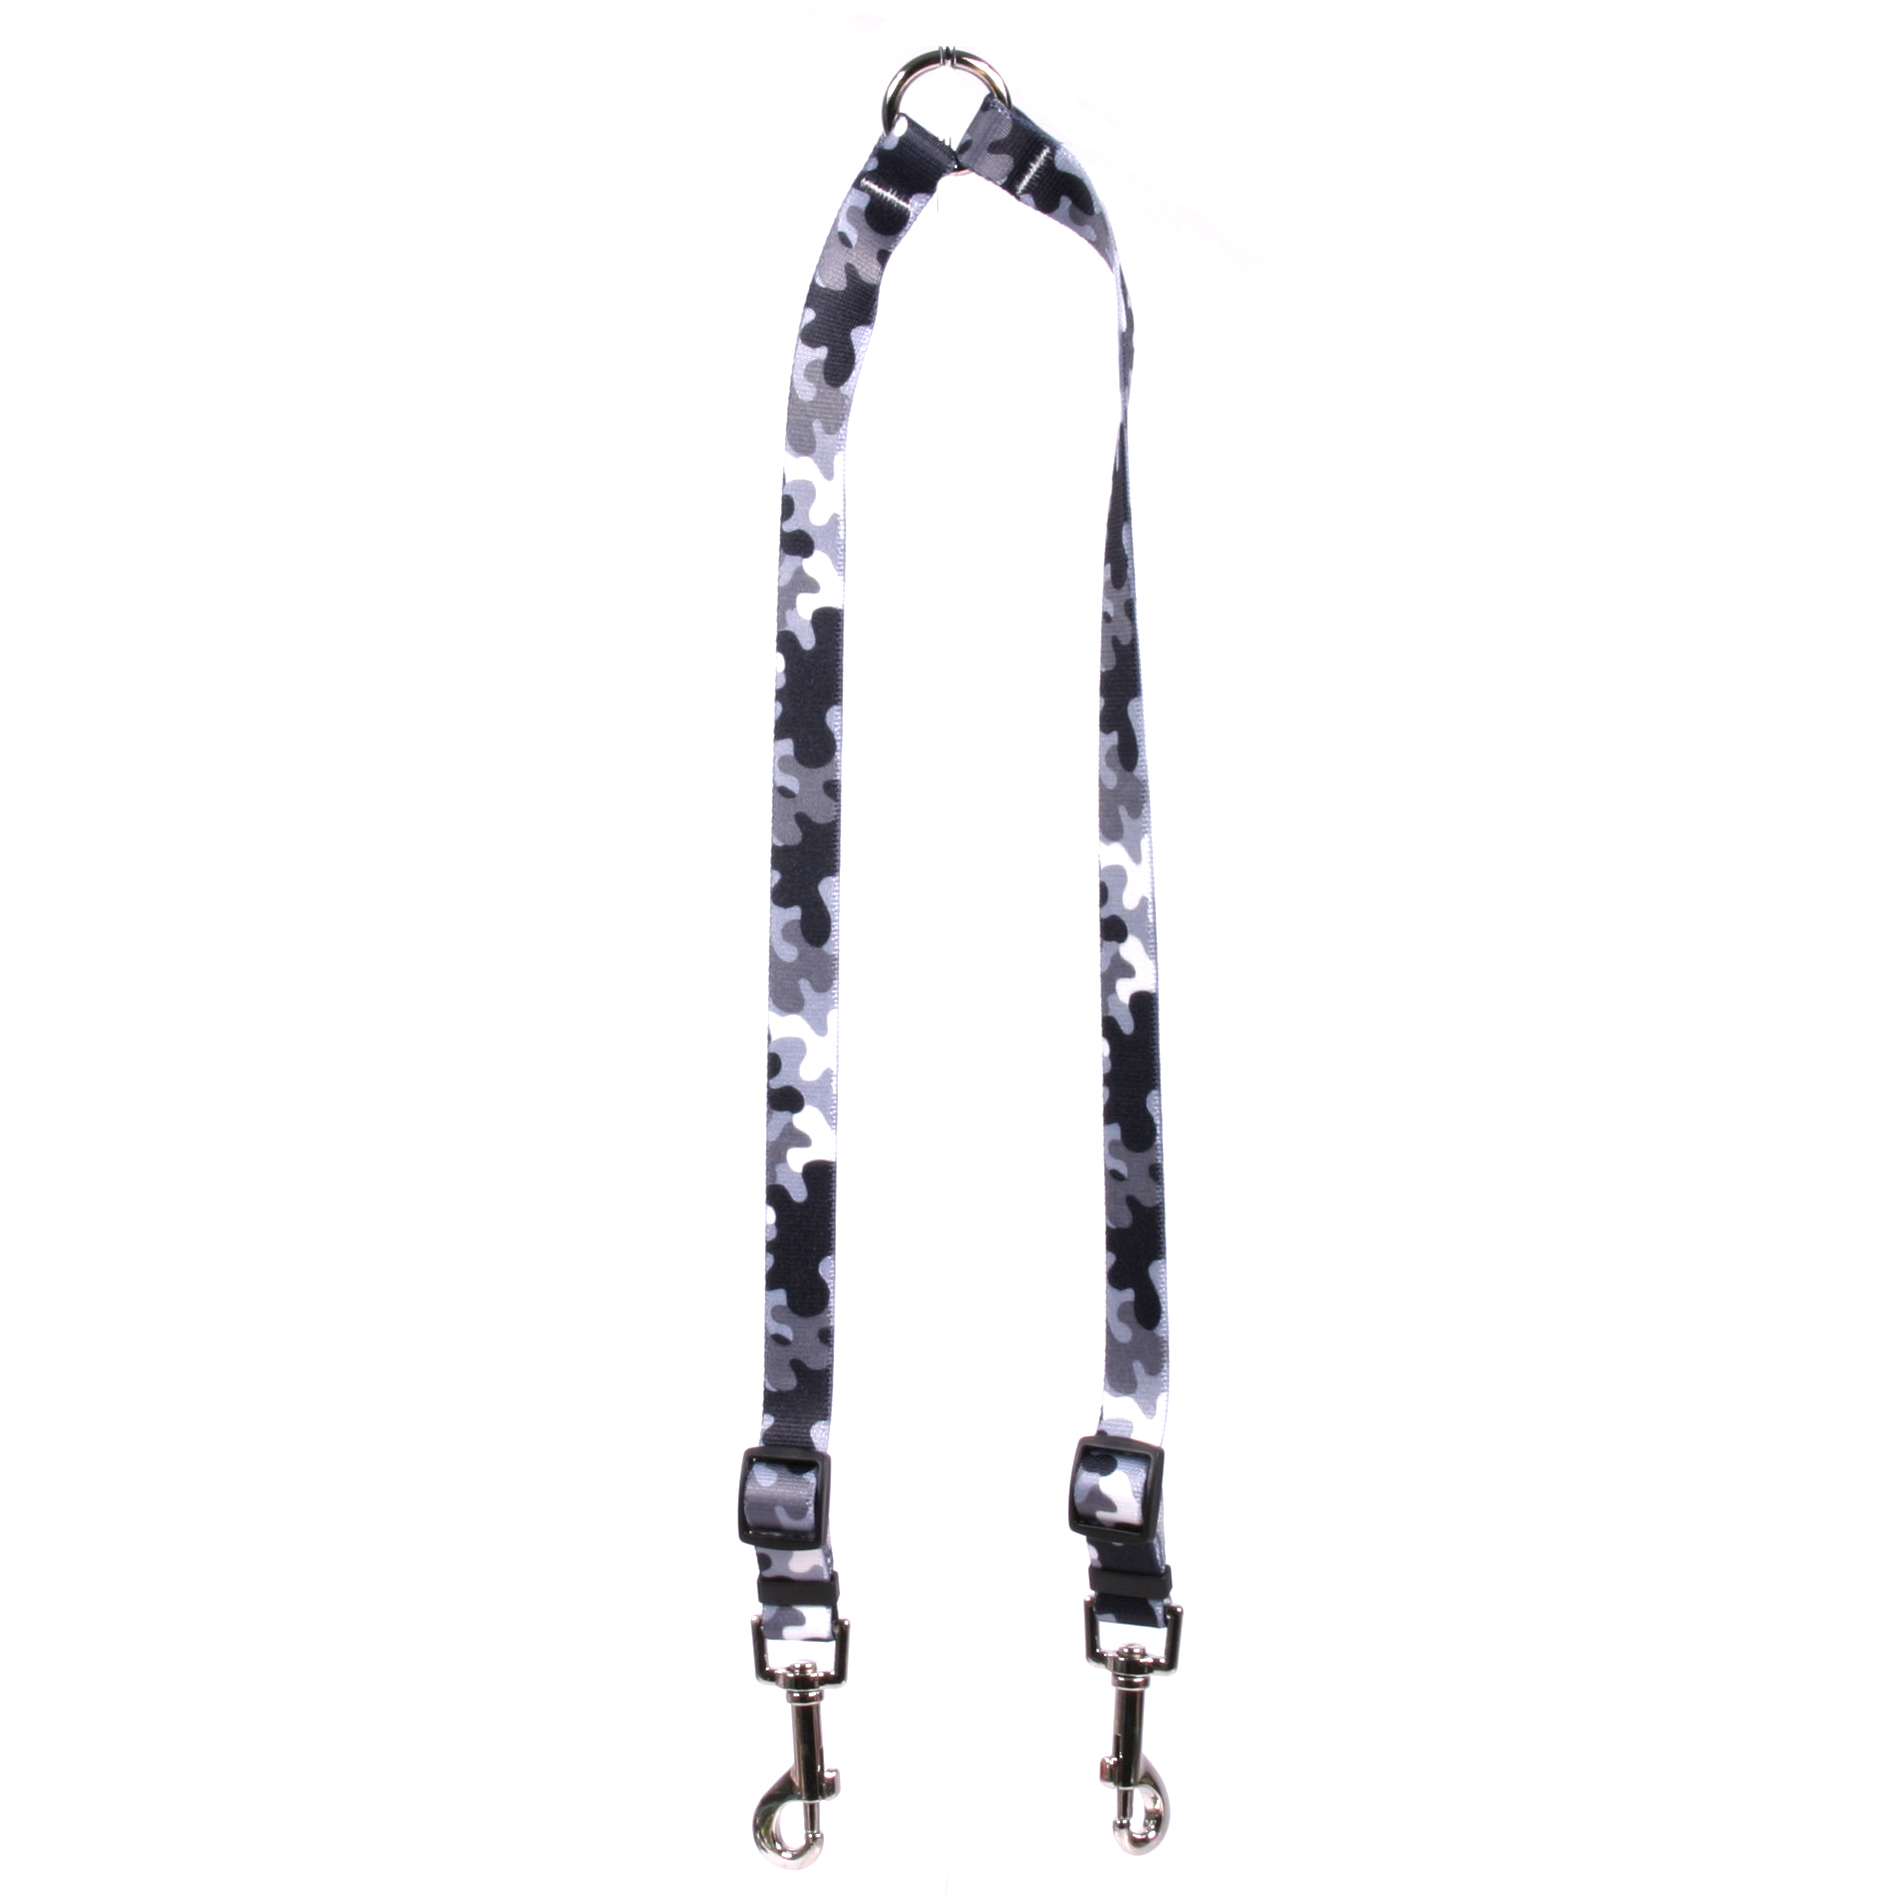 Black and White Camo Coupler Lead